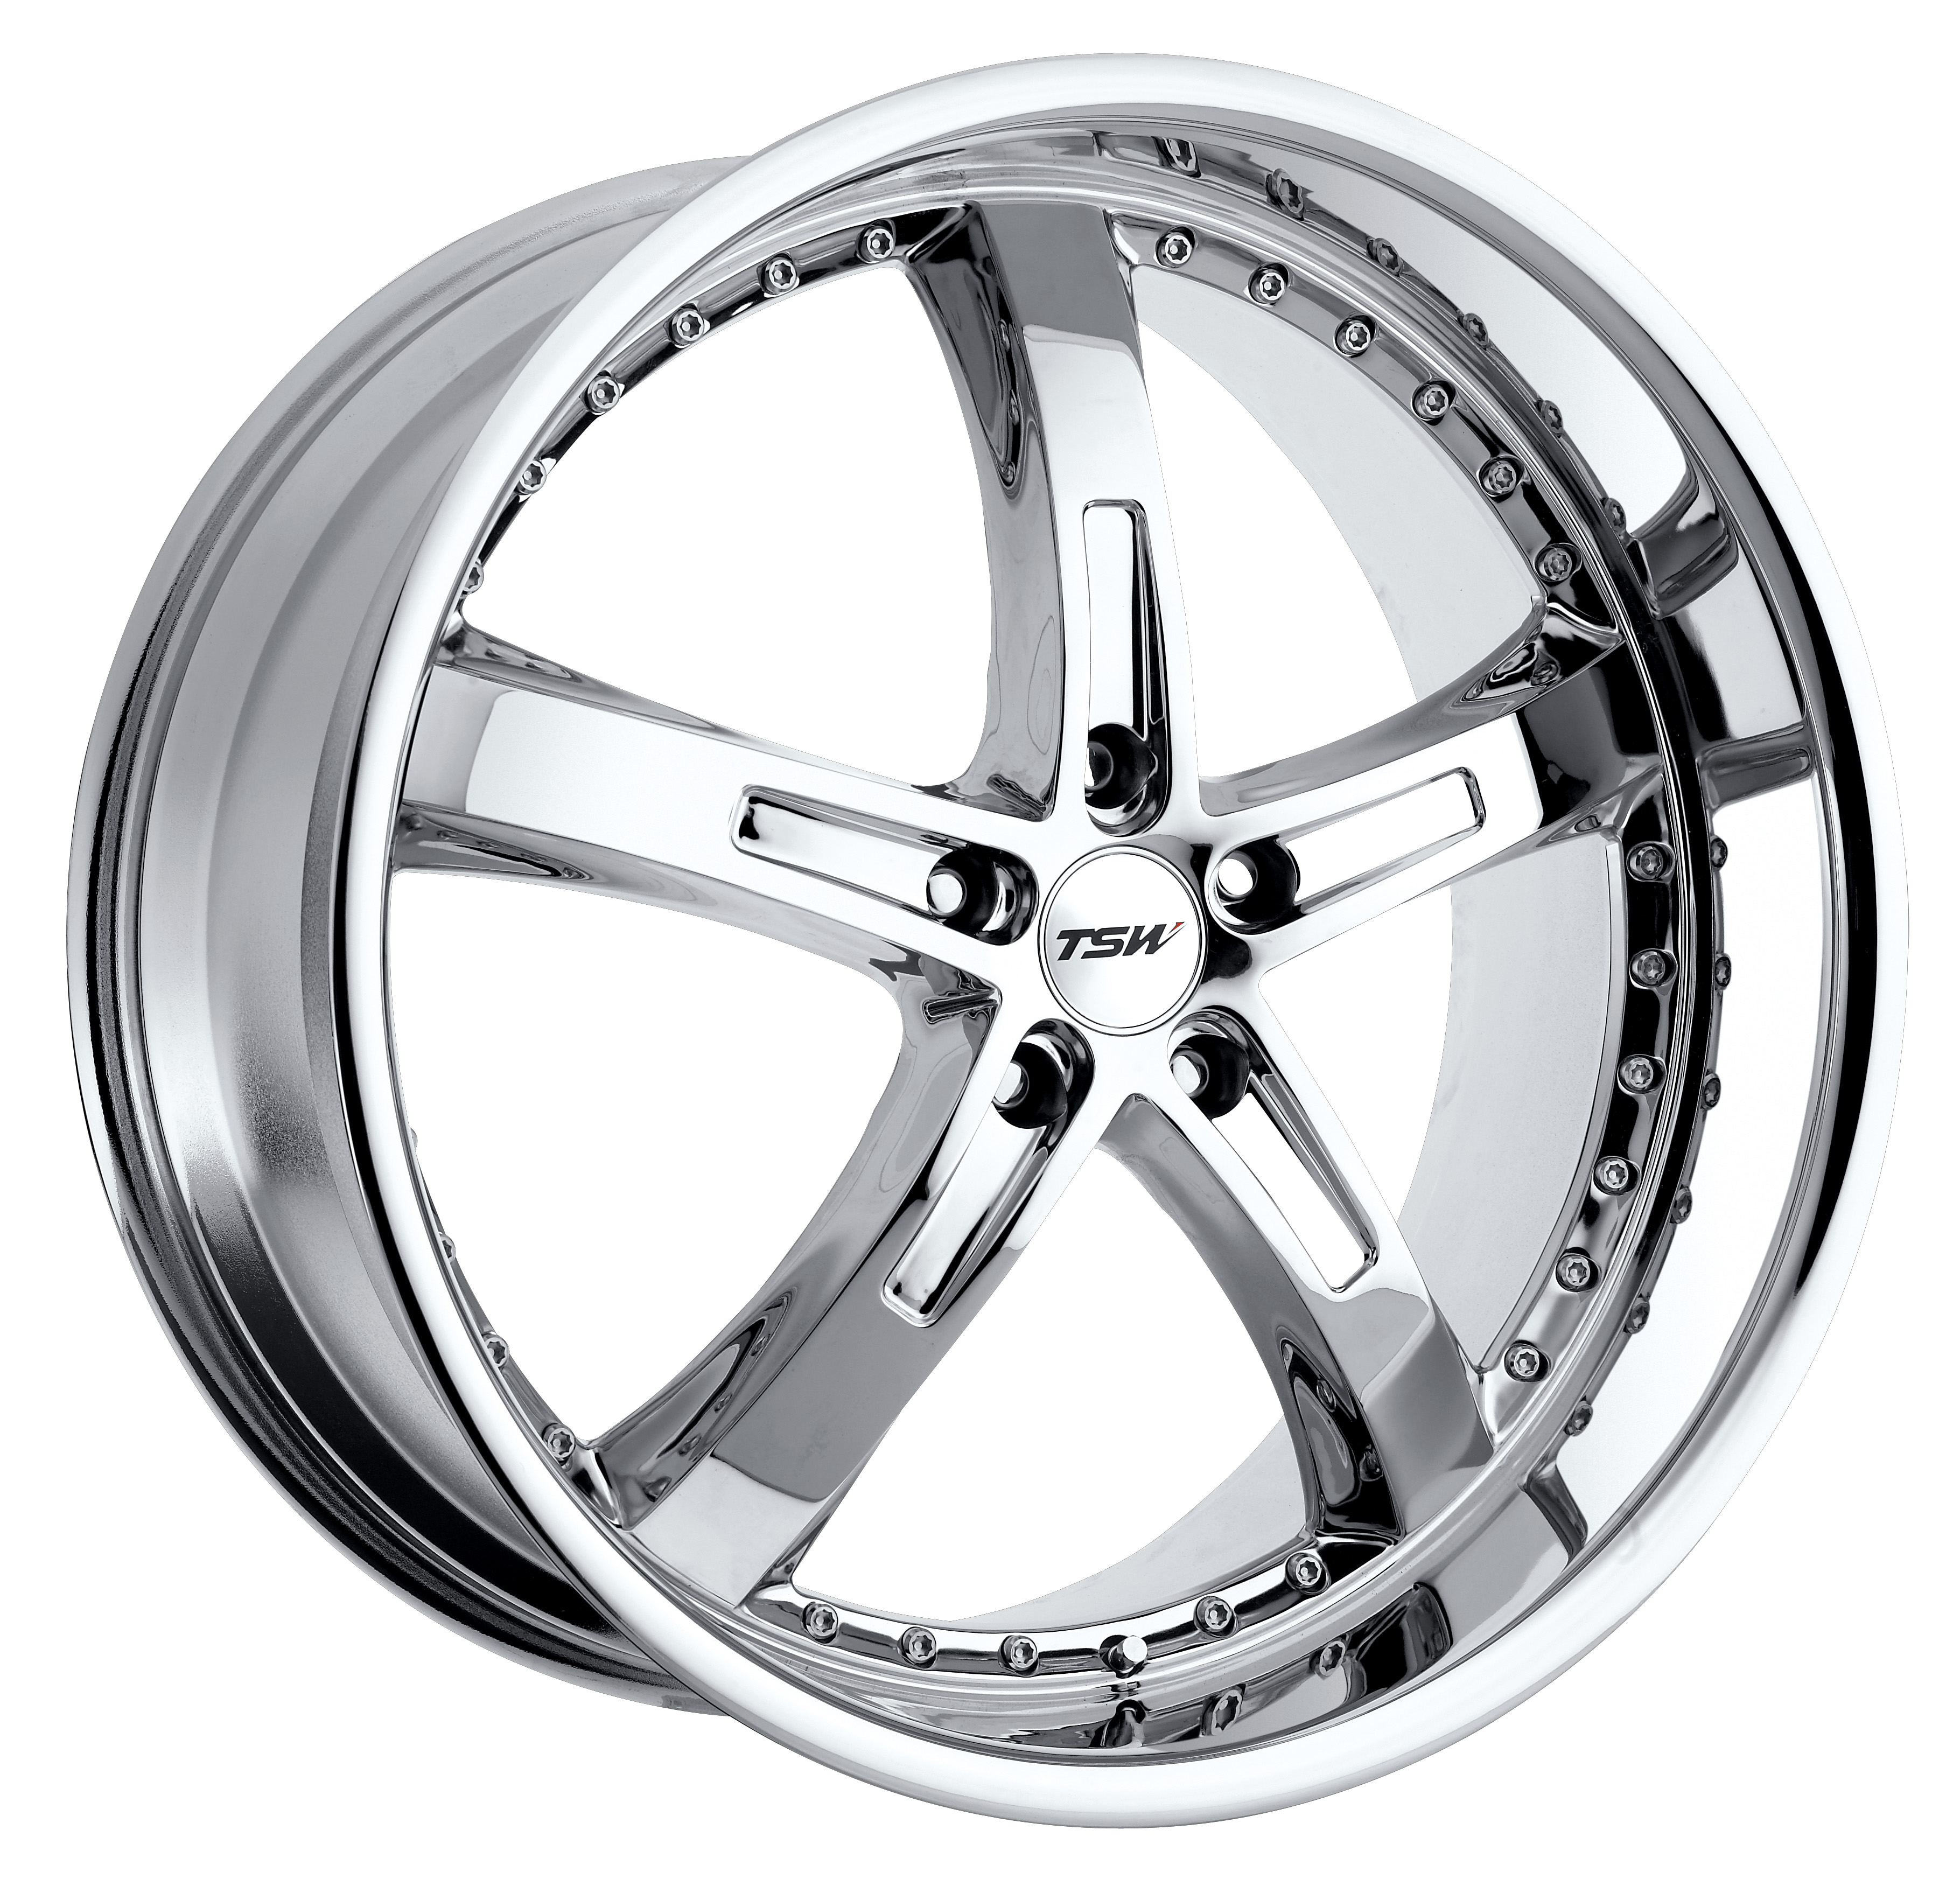 TSW JARAMA CHROME WHEELS AND RIMS PACKAGES at Rideonrims